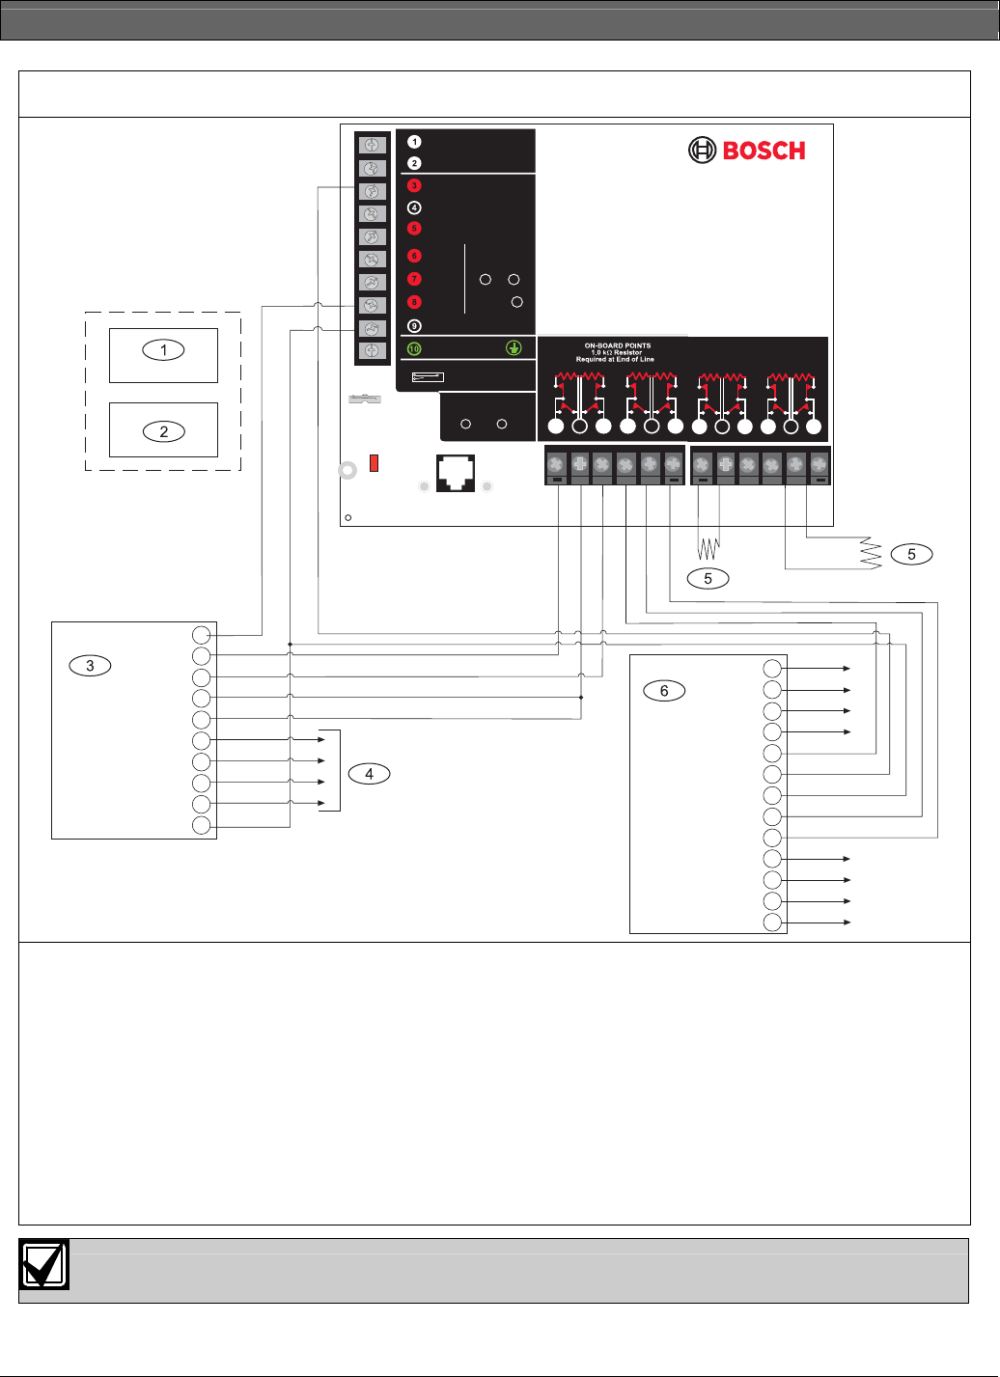 medium resolution of d9412gv3 d7412gv3 operation and installation guide appendix a system wiring diagrams issue a